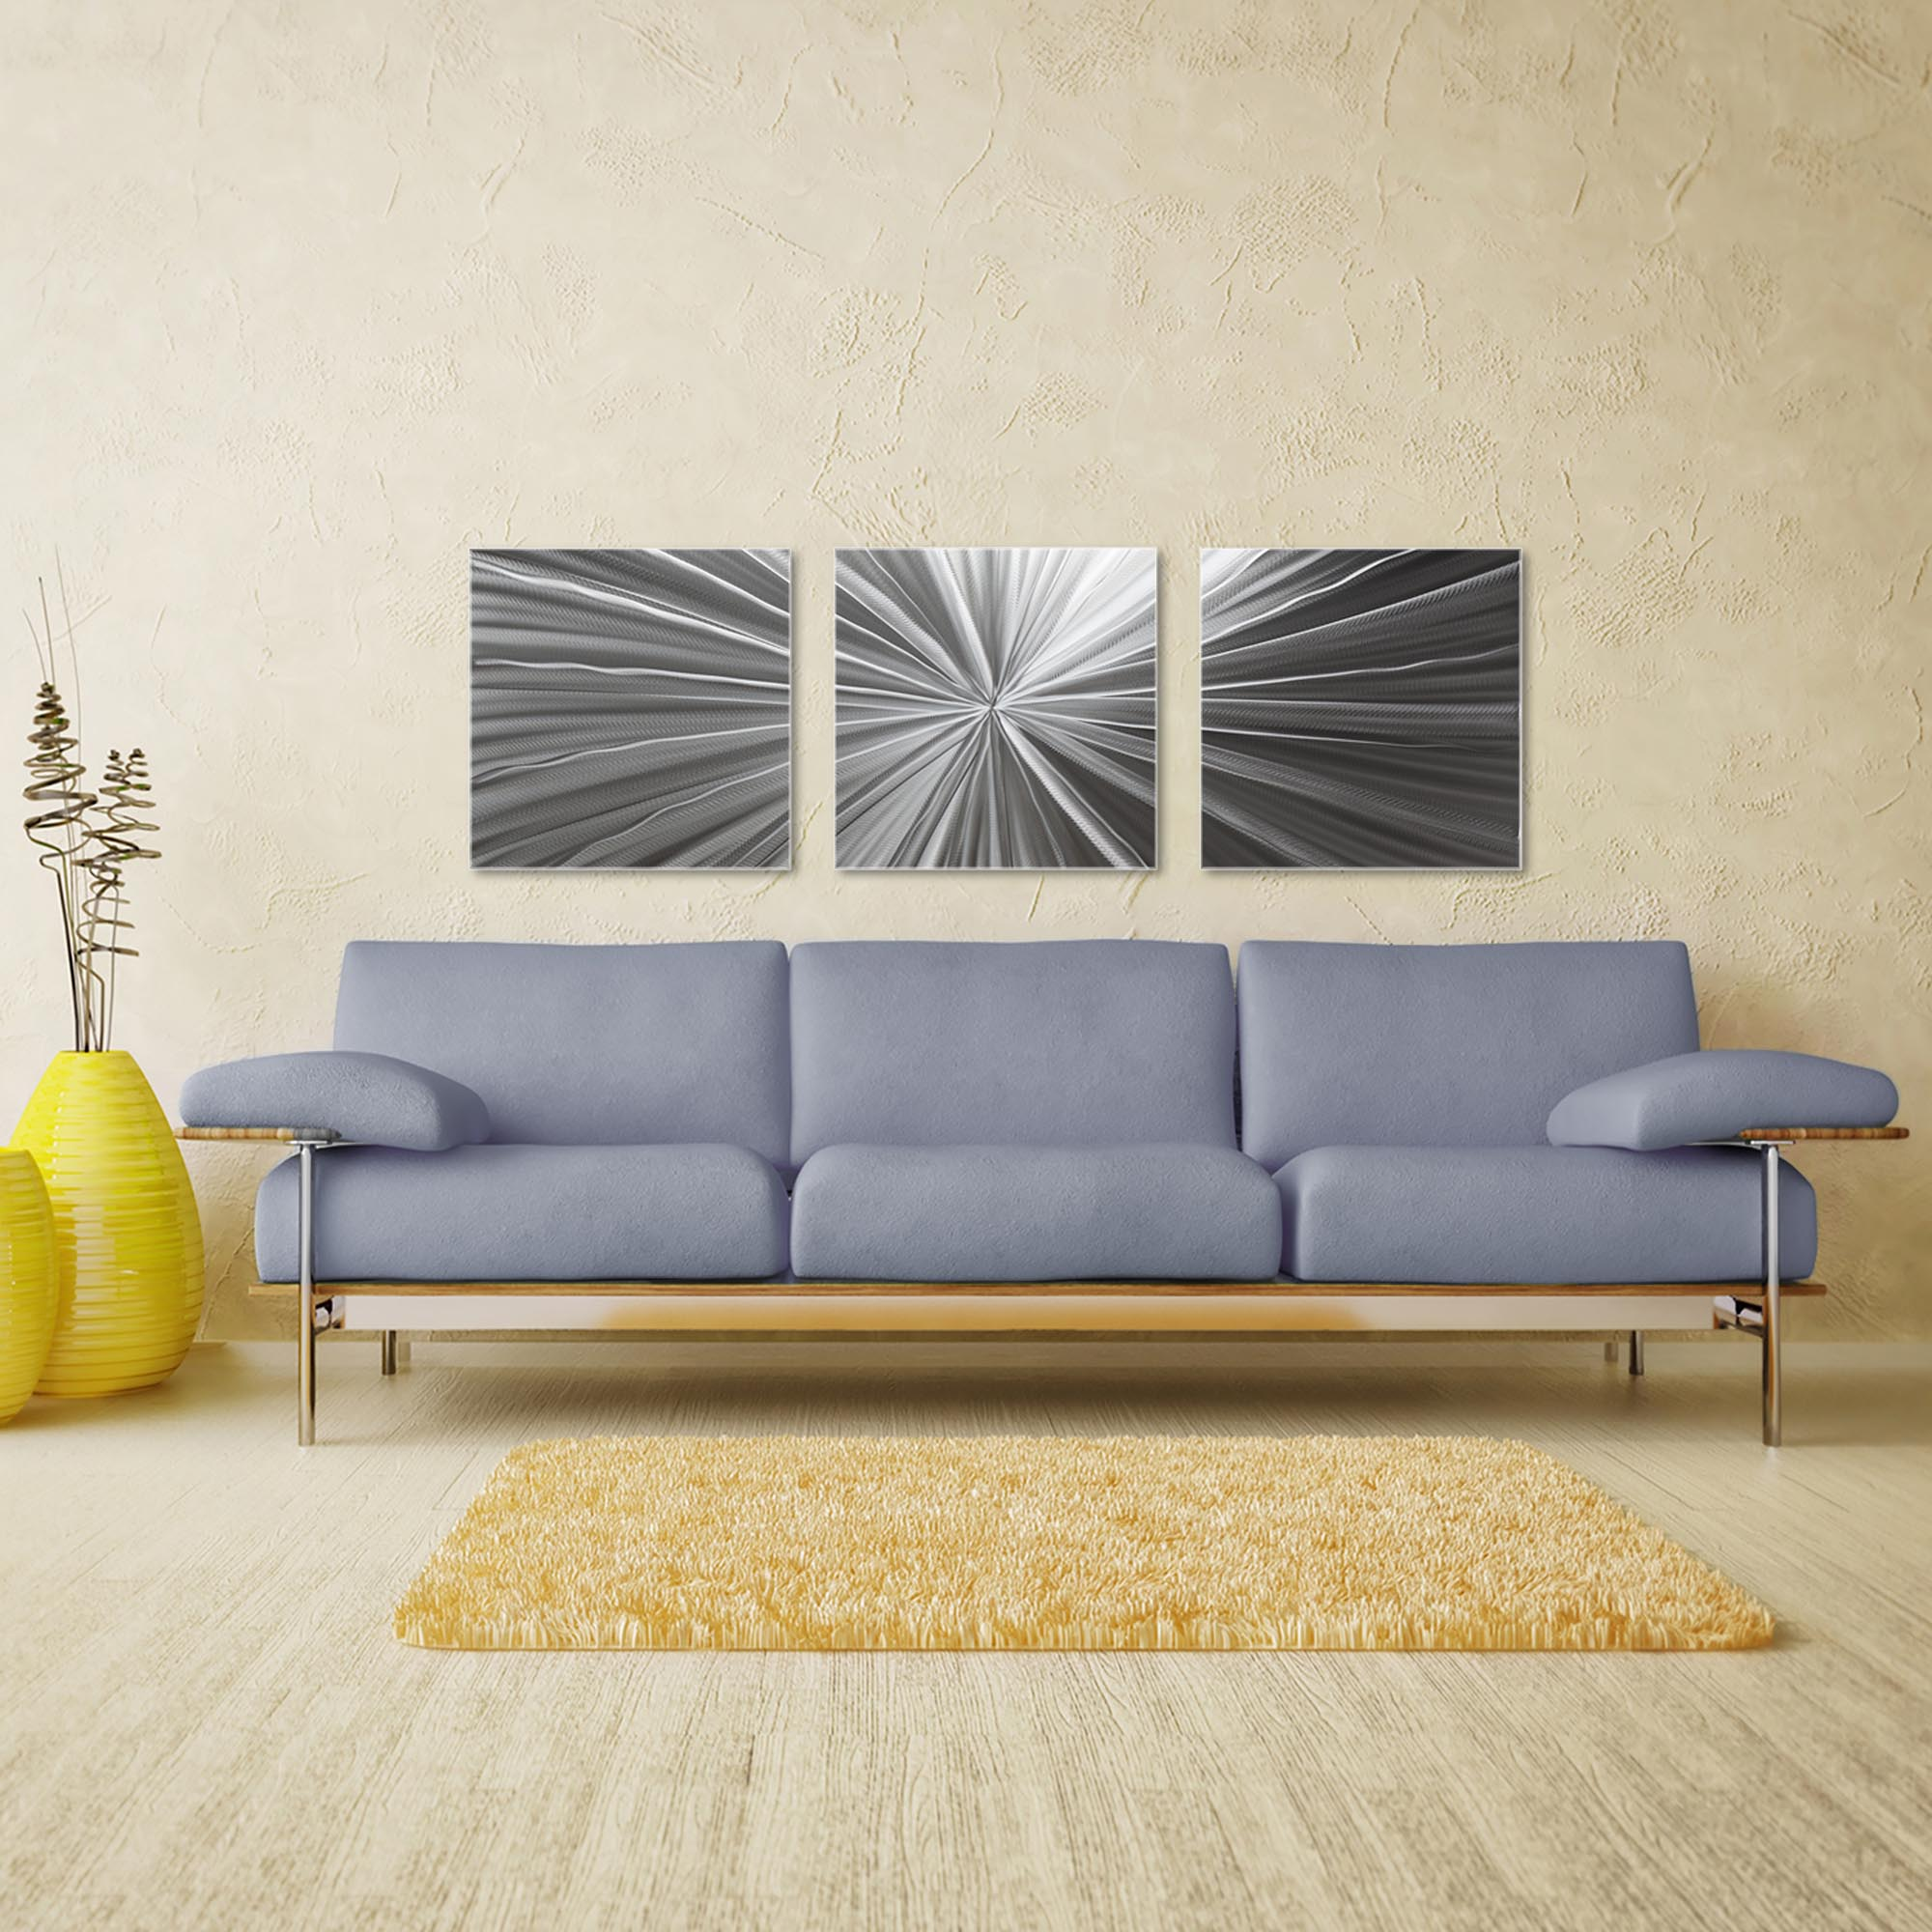 Tantalum Triptych Large 70x22in. Metal or Acrylic Contemporary Decor - Image 3